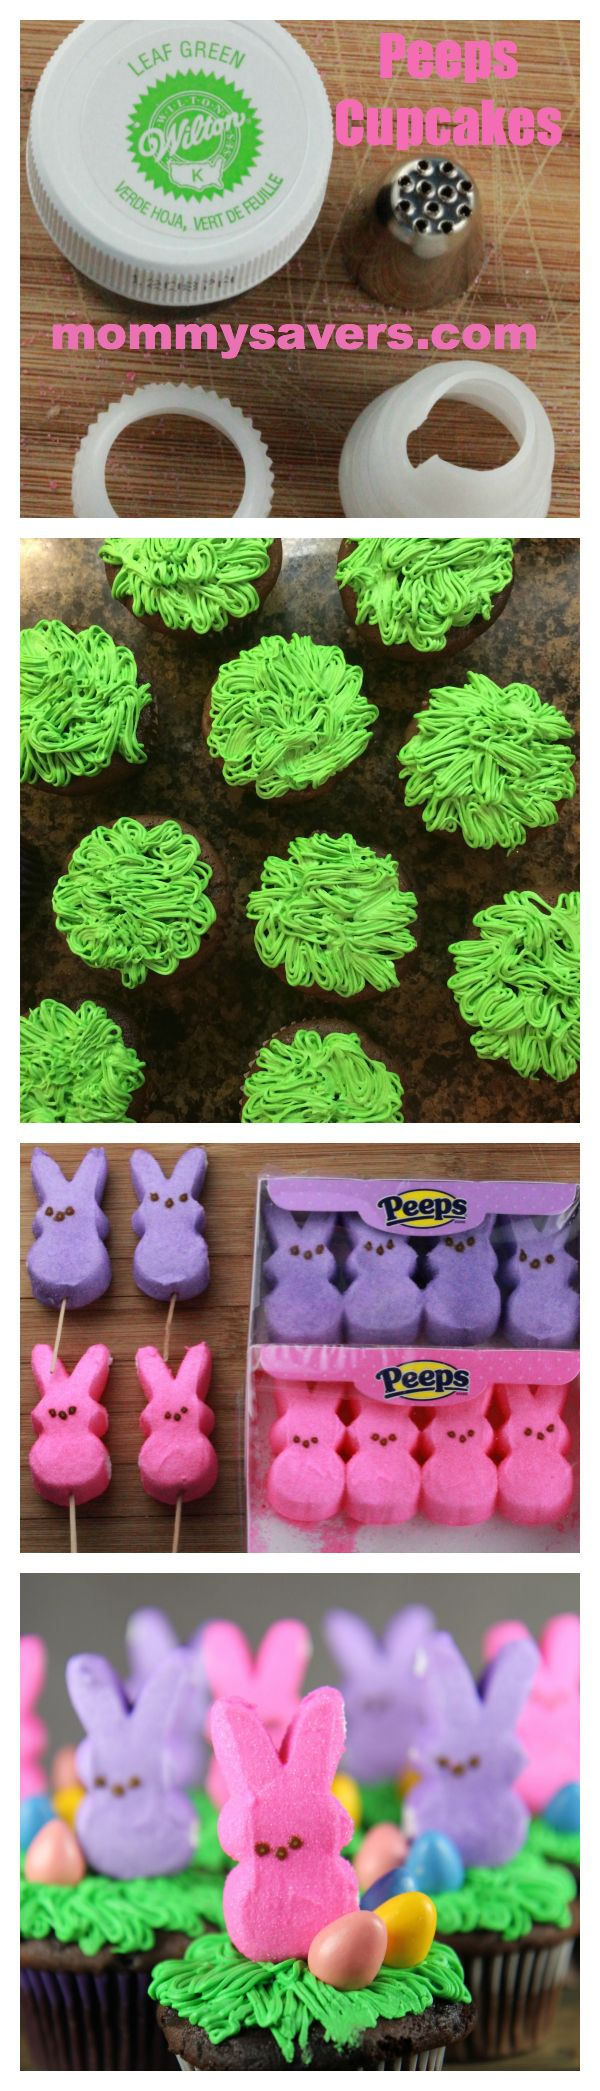 Easter Peeps Cupcakes + How to get the bunnies to stand up without falling over